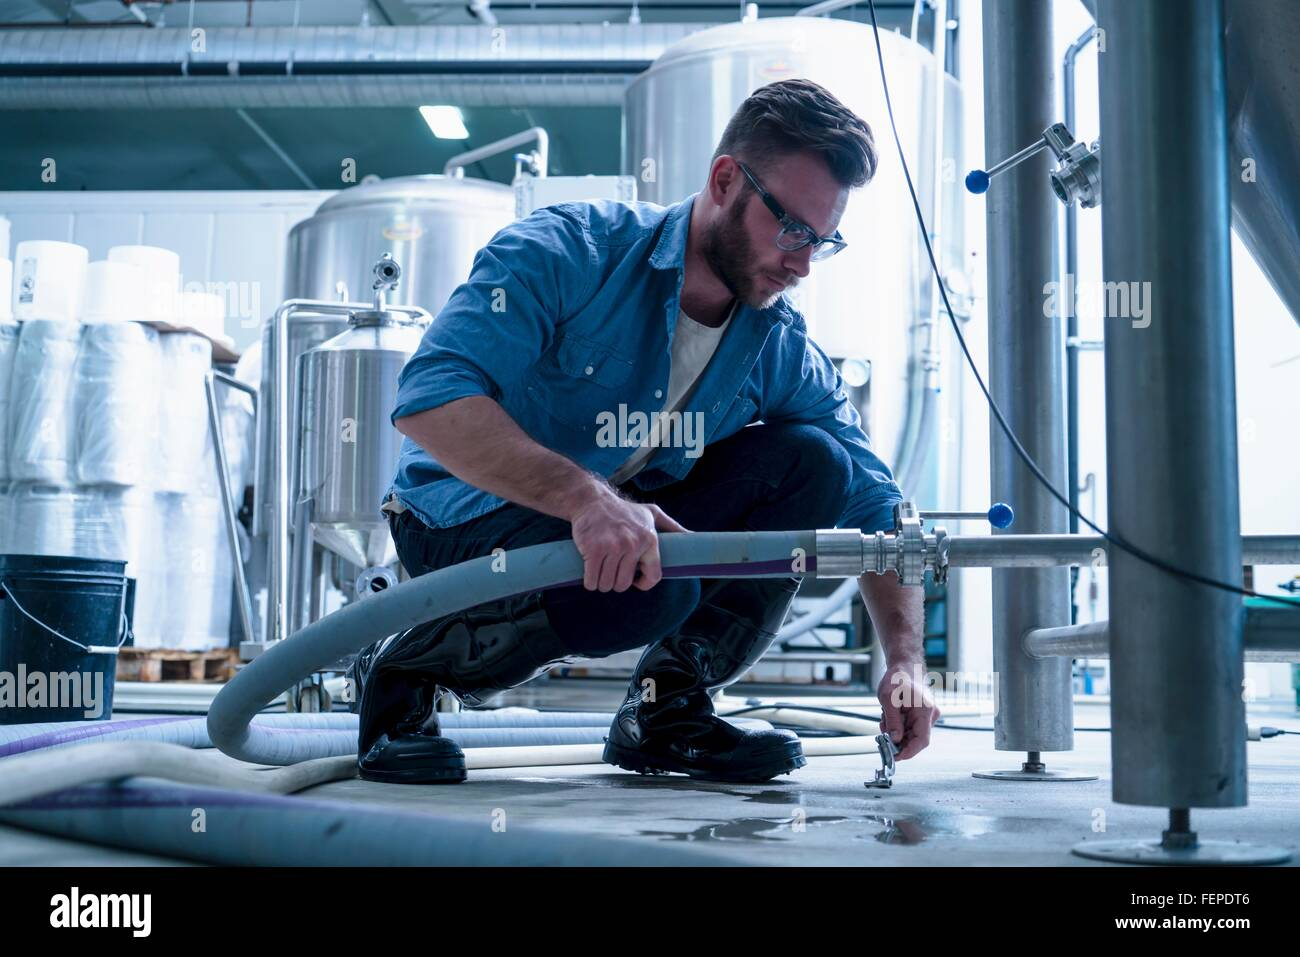 Young man in brewery crouching down connecting pipe - Stock Image